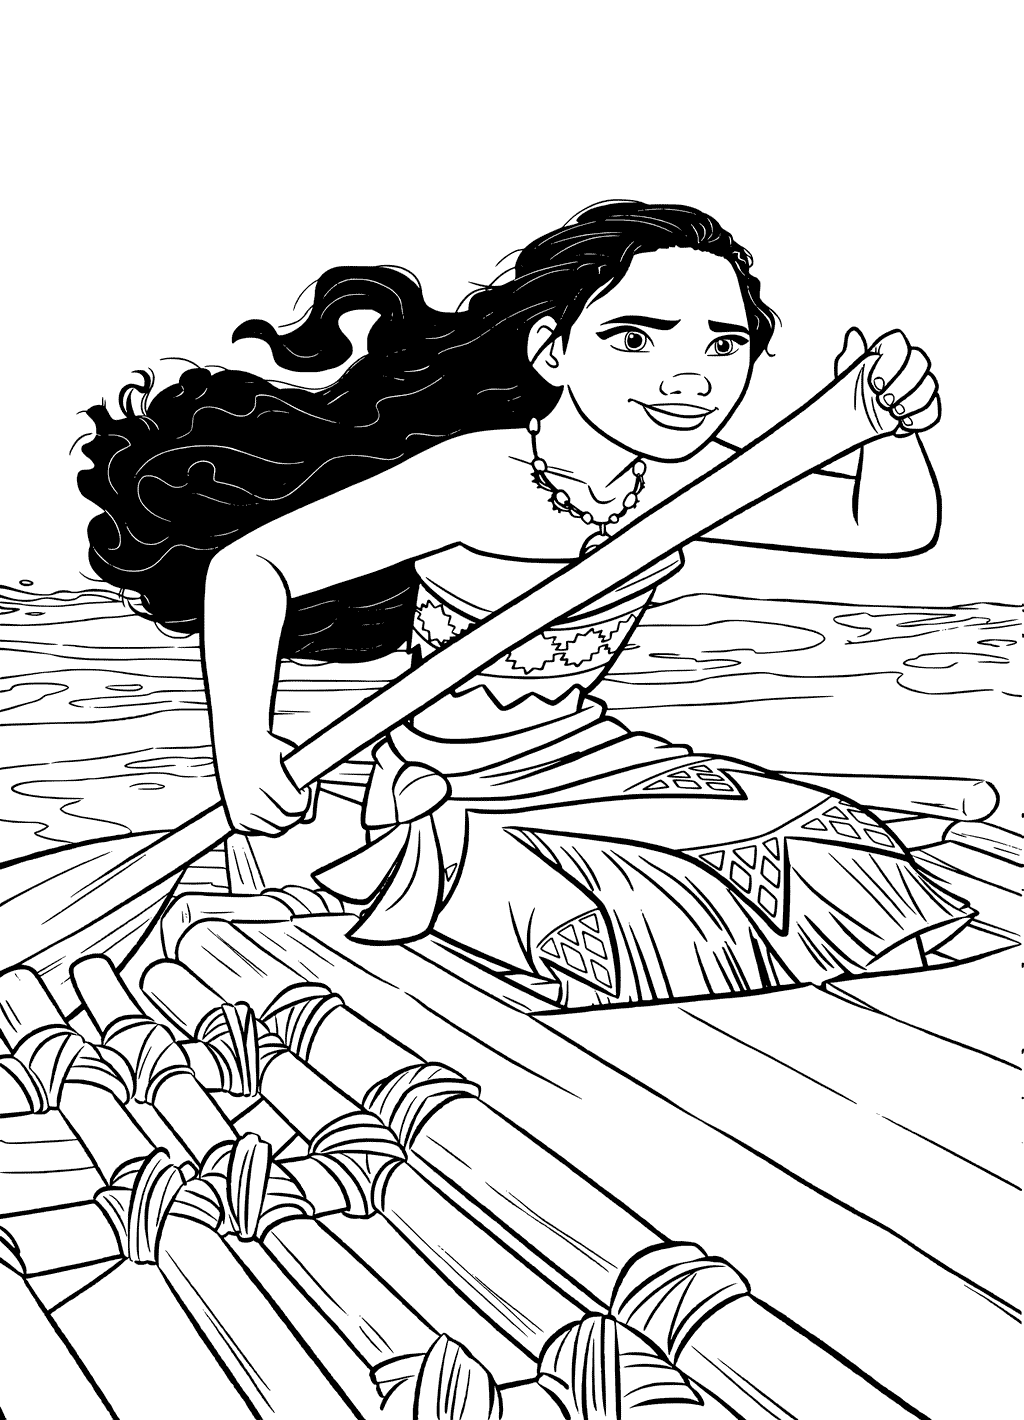 top 10 moana coloring pages free printables - Coloring Pictures Free